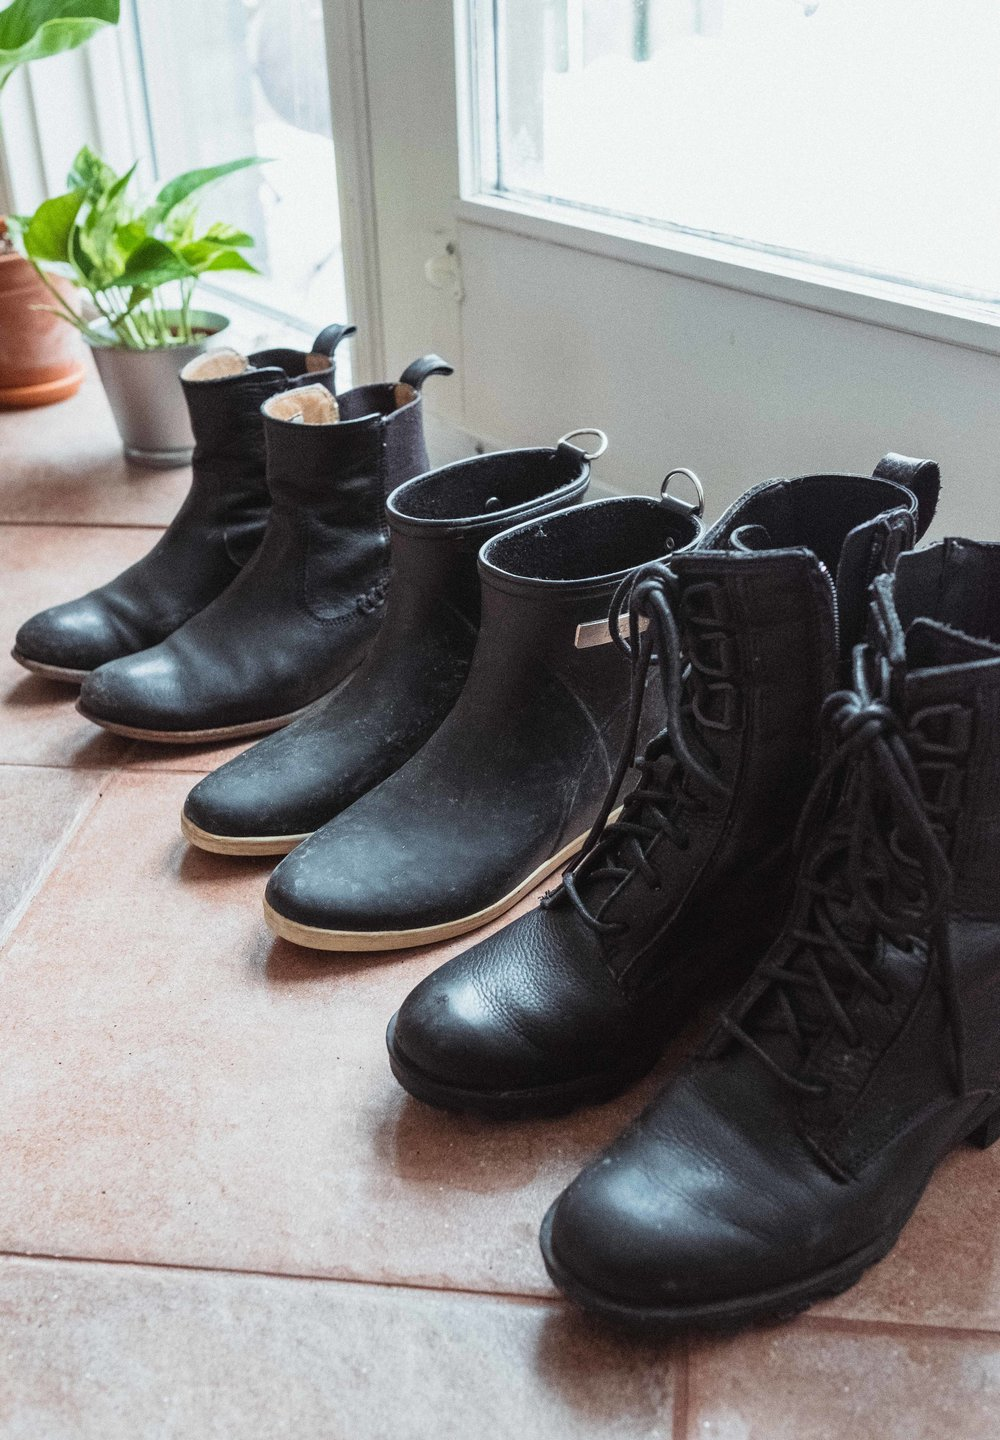 Far left: Frye Middle:  Alice + Whittles  Right: Sorel